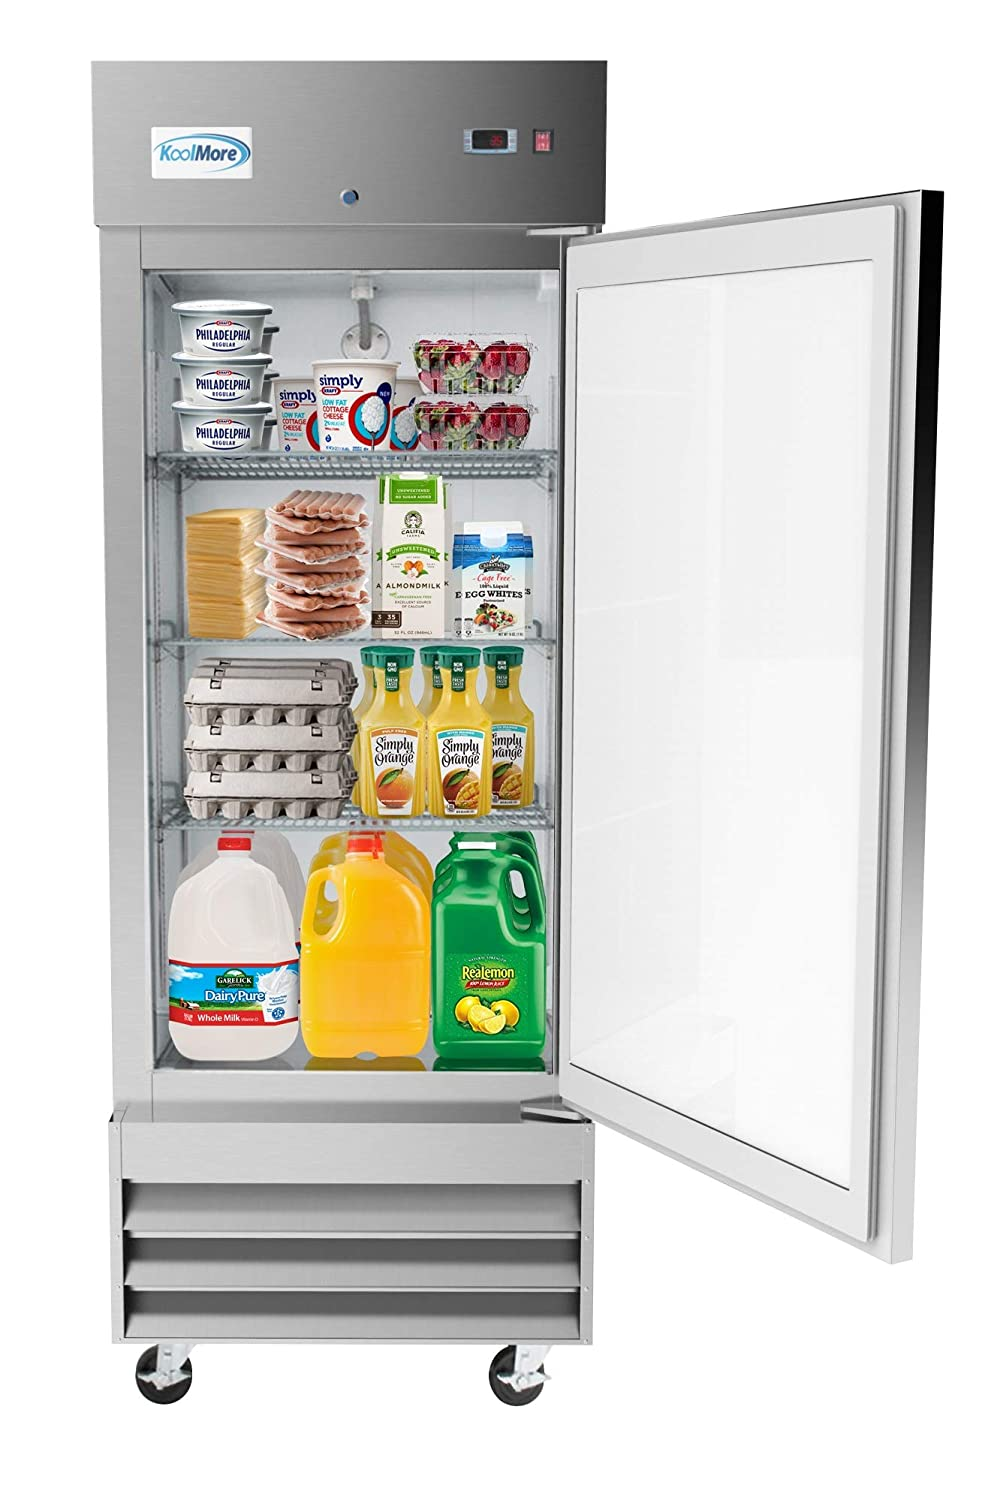 "KoolMore 29"" Stainless Steel Solid Door Commercial Reach-in Refrigerator Cooler - 19 cu. ft"